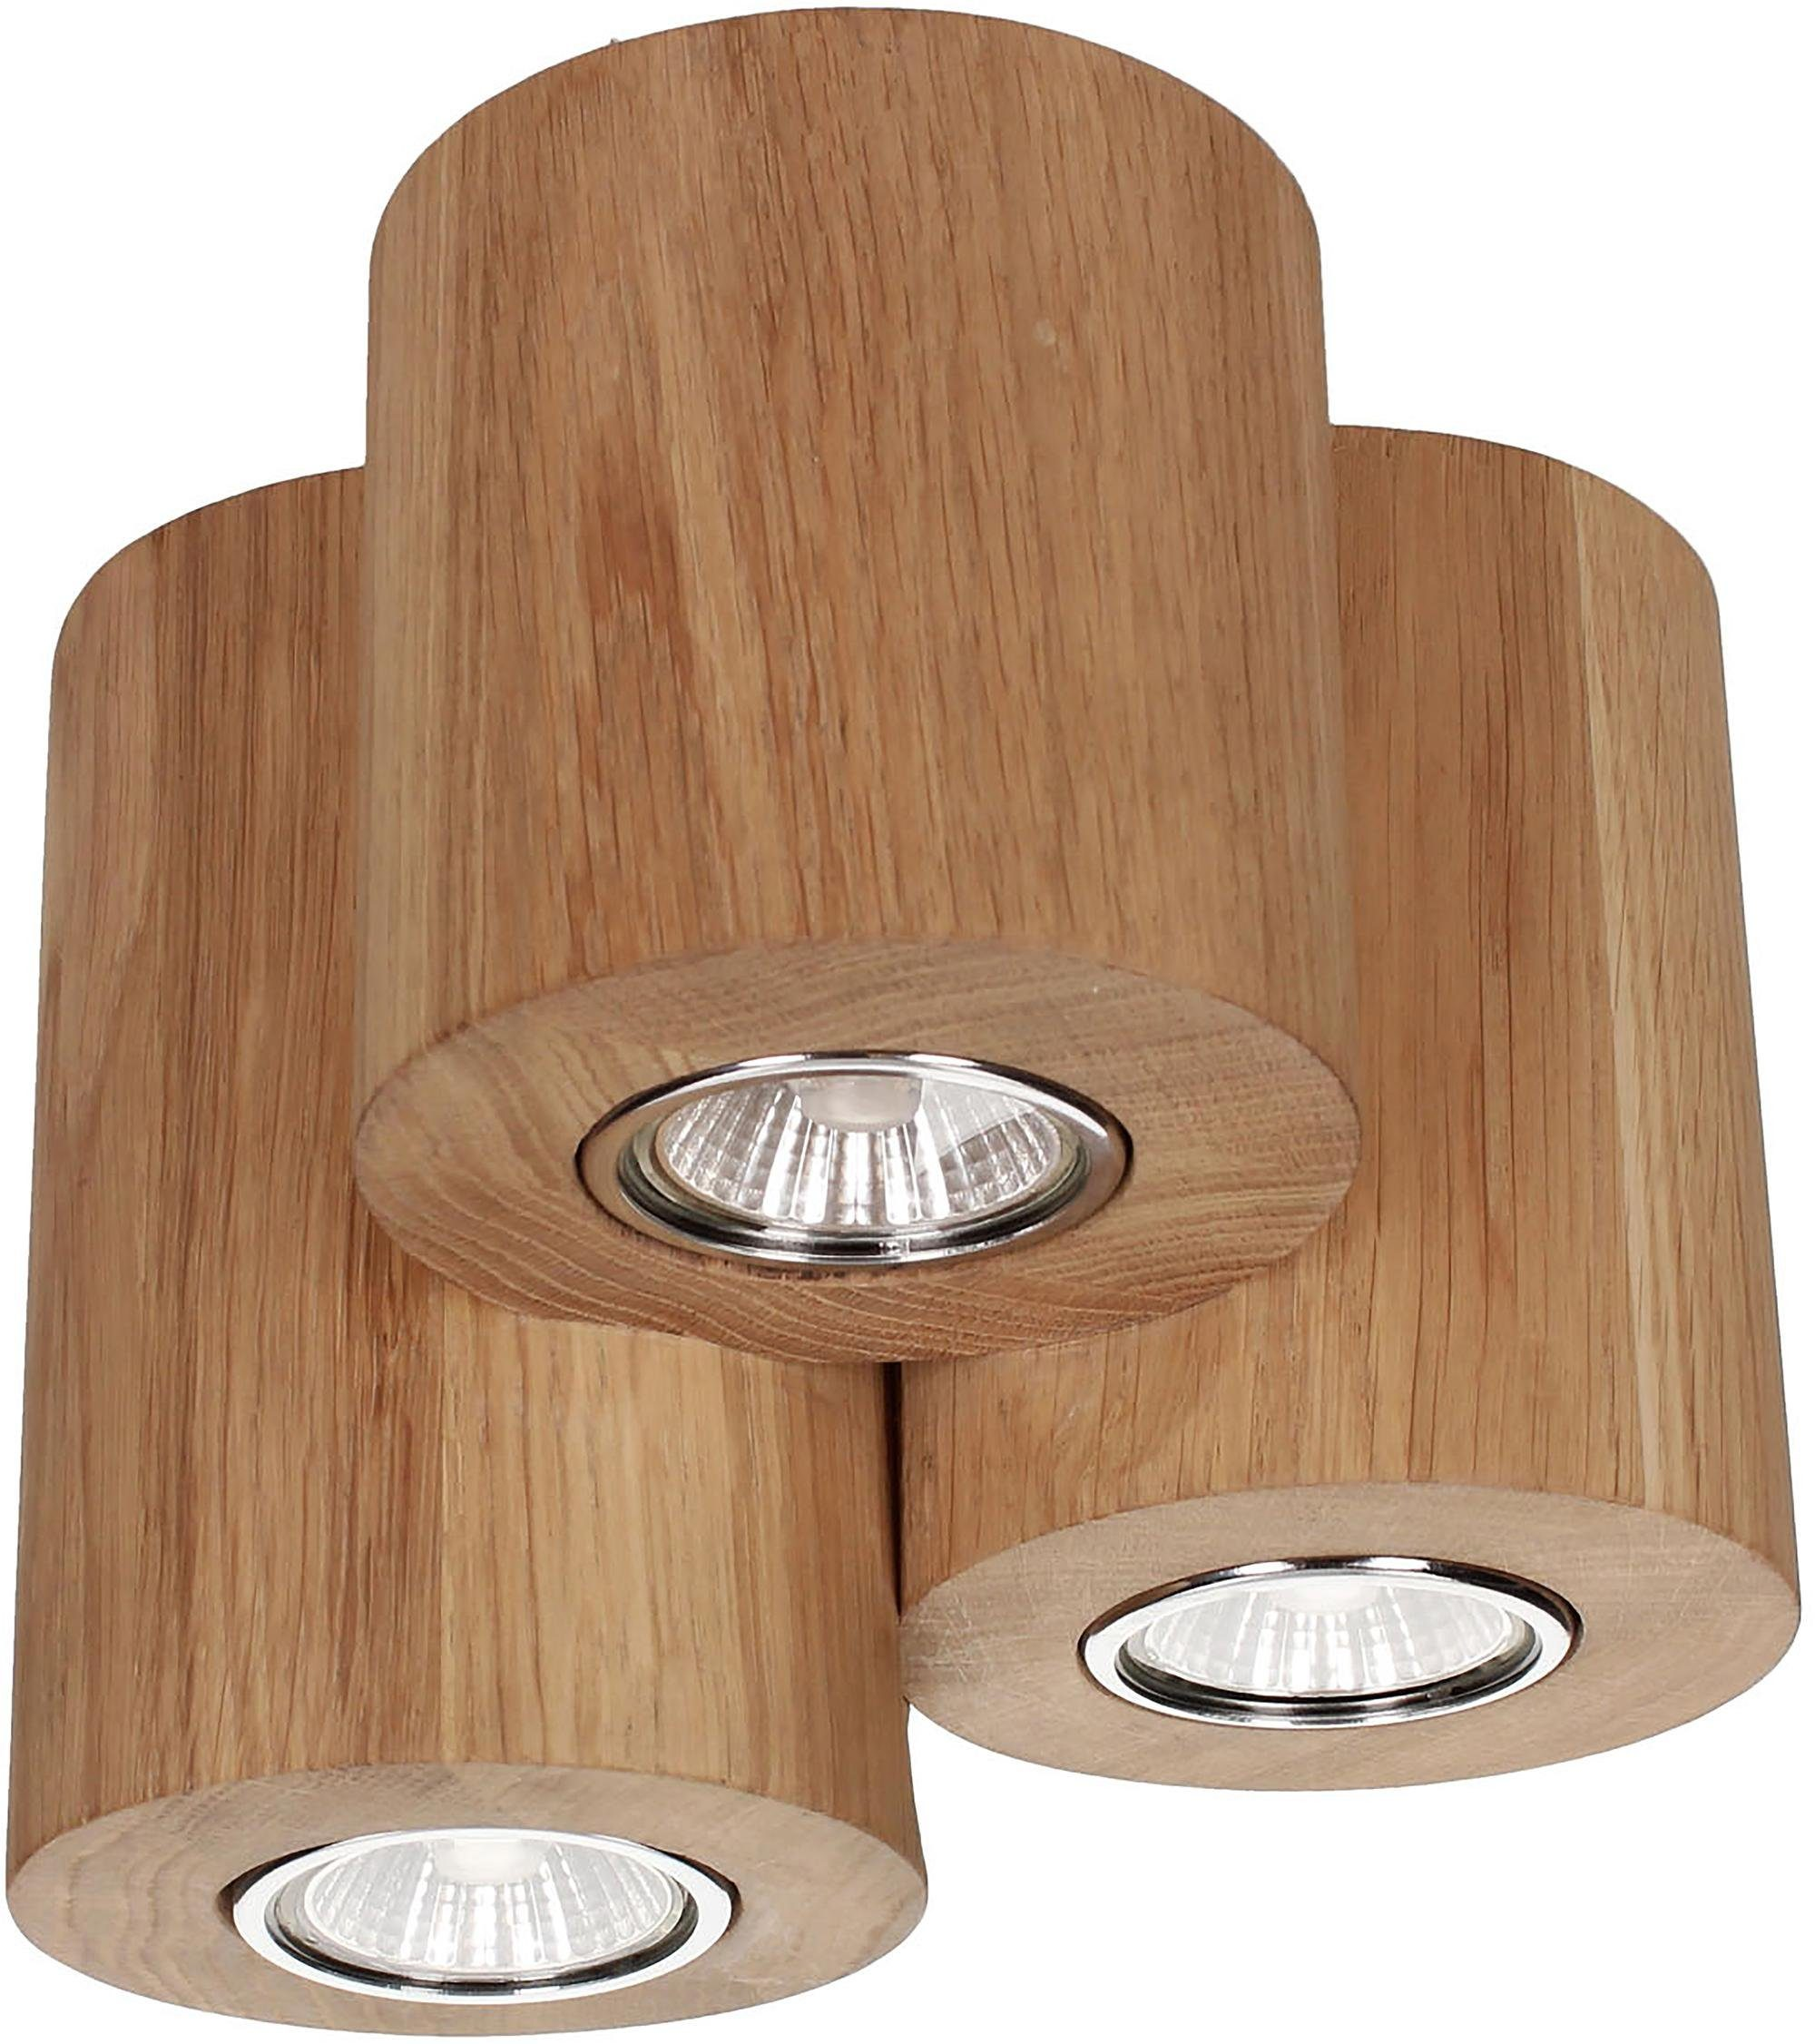 SPOT Light LED Deckenleuchte »WOODDREAM«